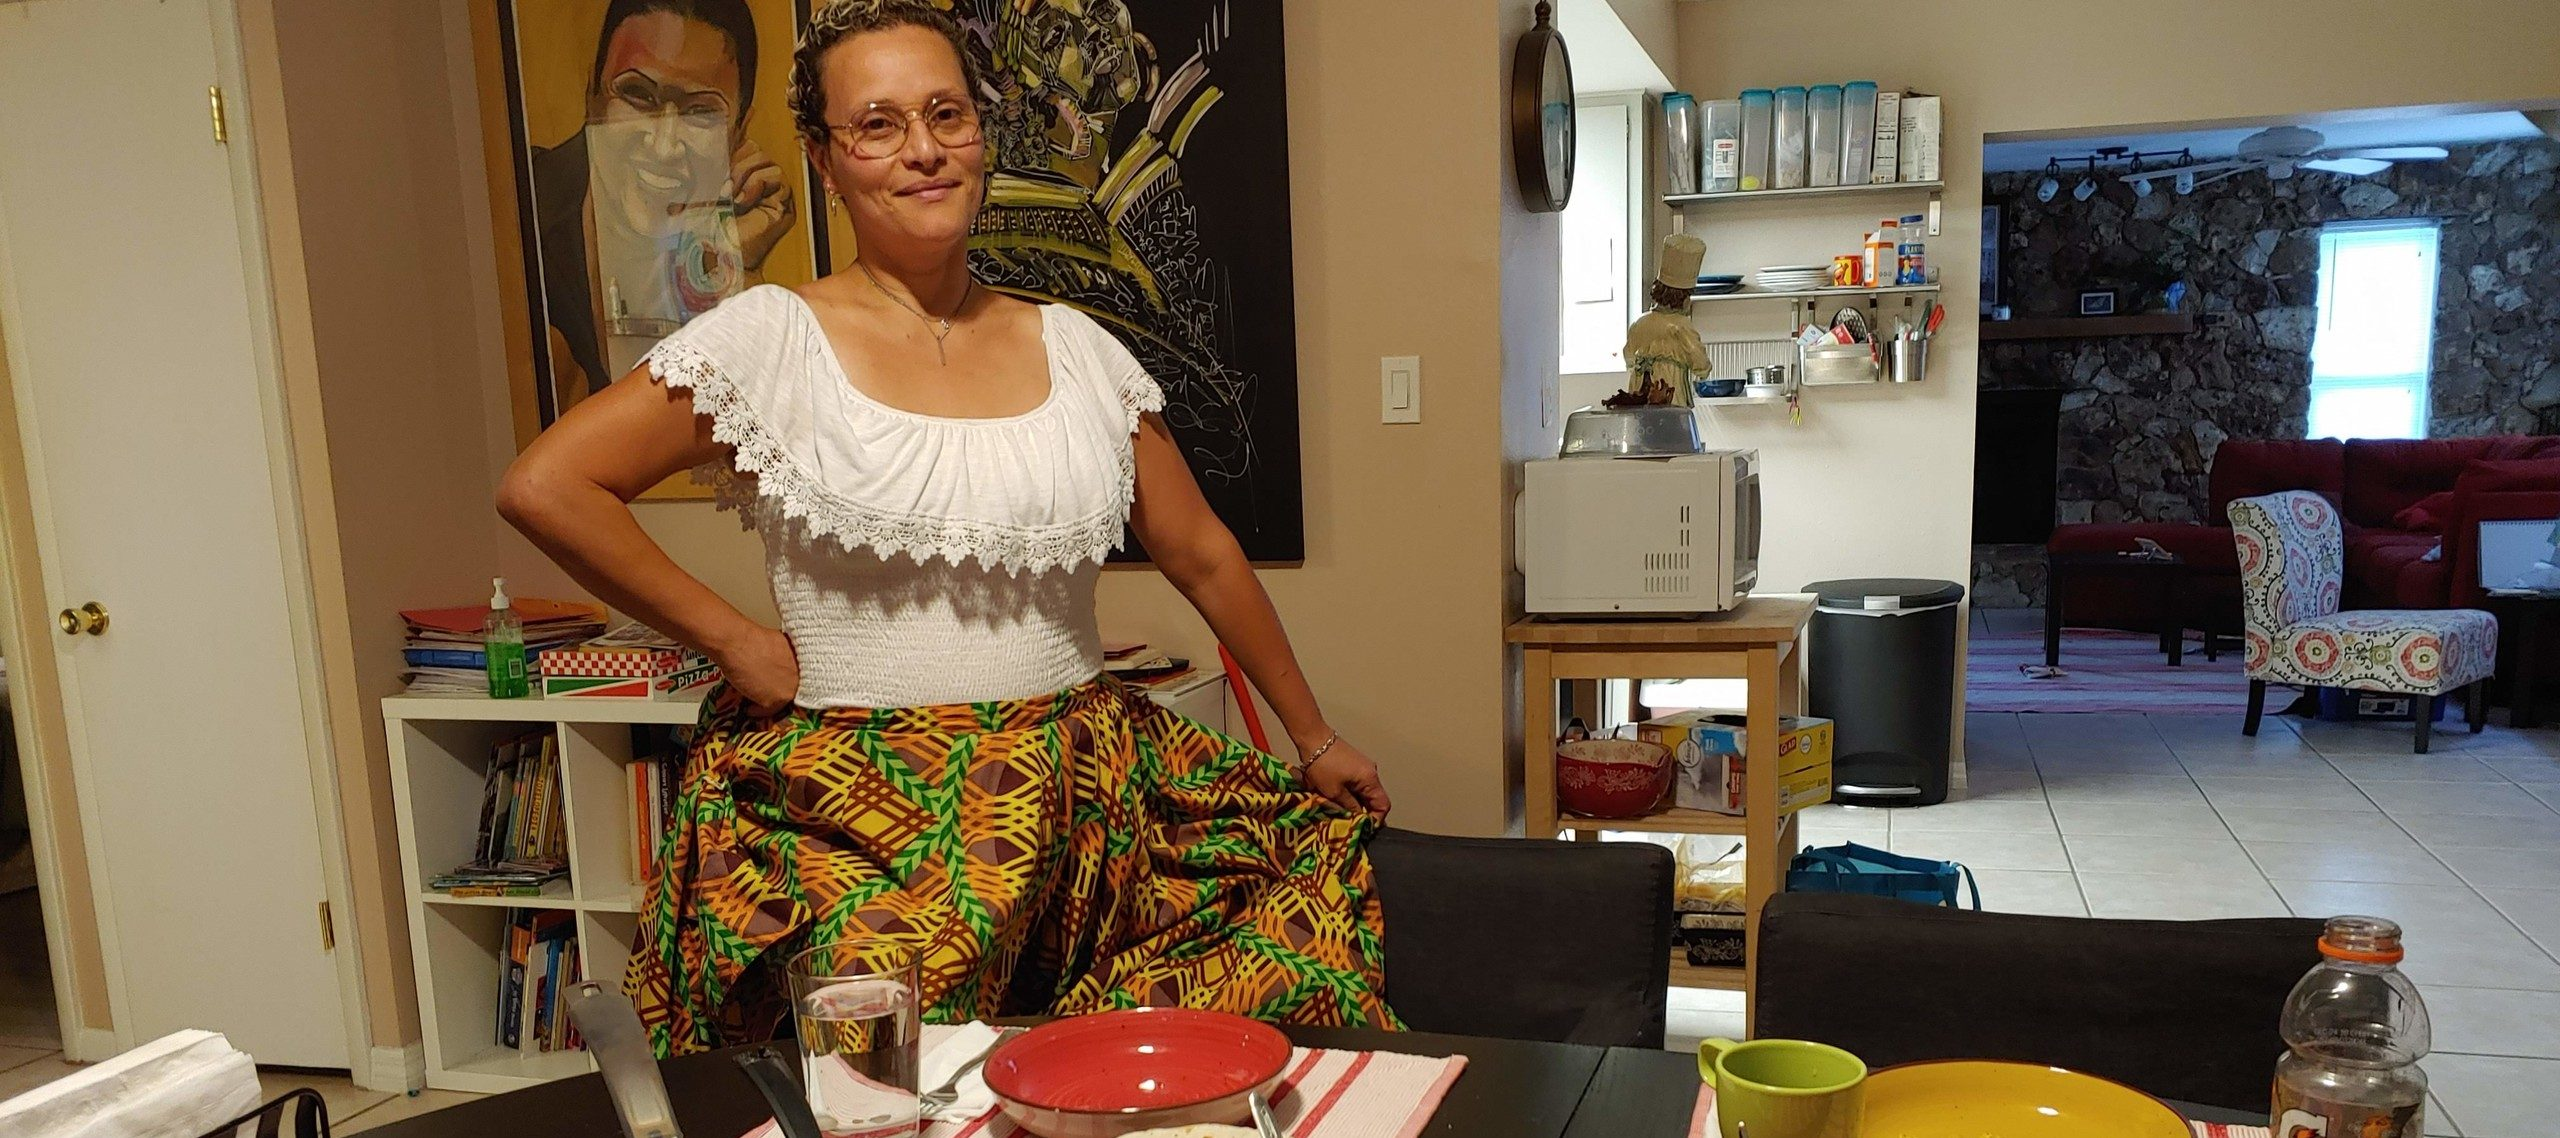 A medium skin-toned adult woman wearing traditional Puerto Rican dress—a white blouse with lace neck and brightly patterned skirt—stands smiling in front of her dining table in her home. The table is set with bowls and pots of ground beef, salsa, sauce, guacamole, and salad.